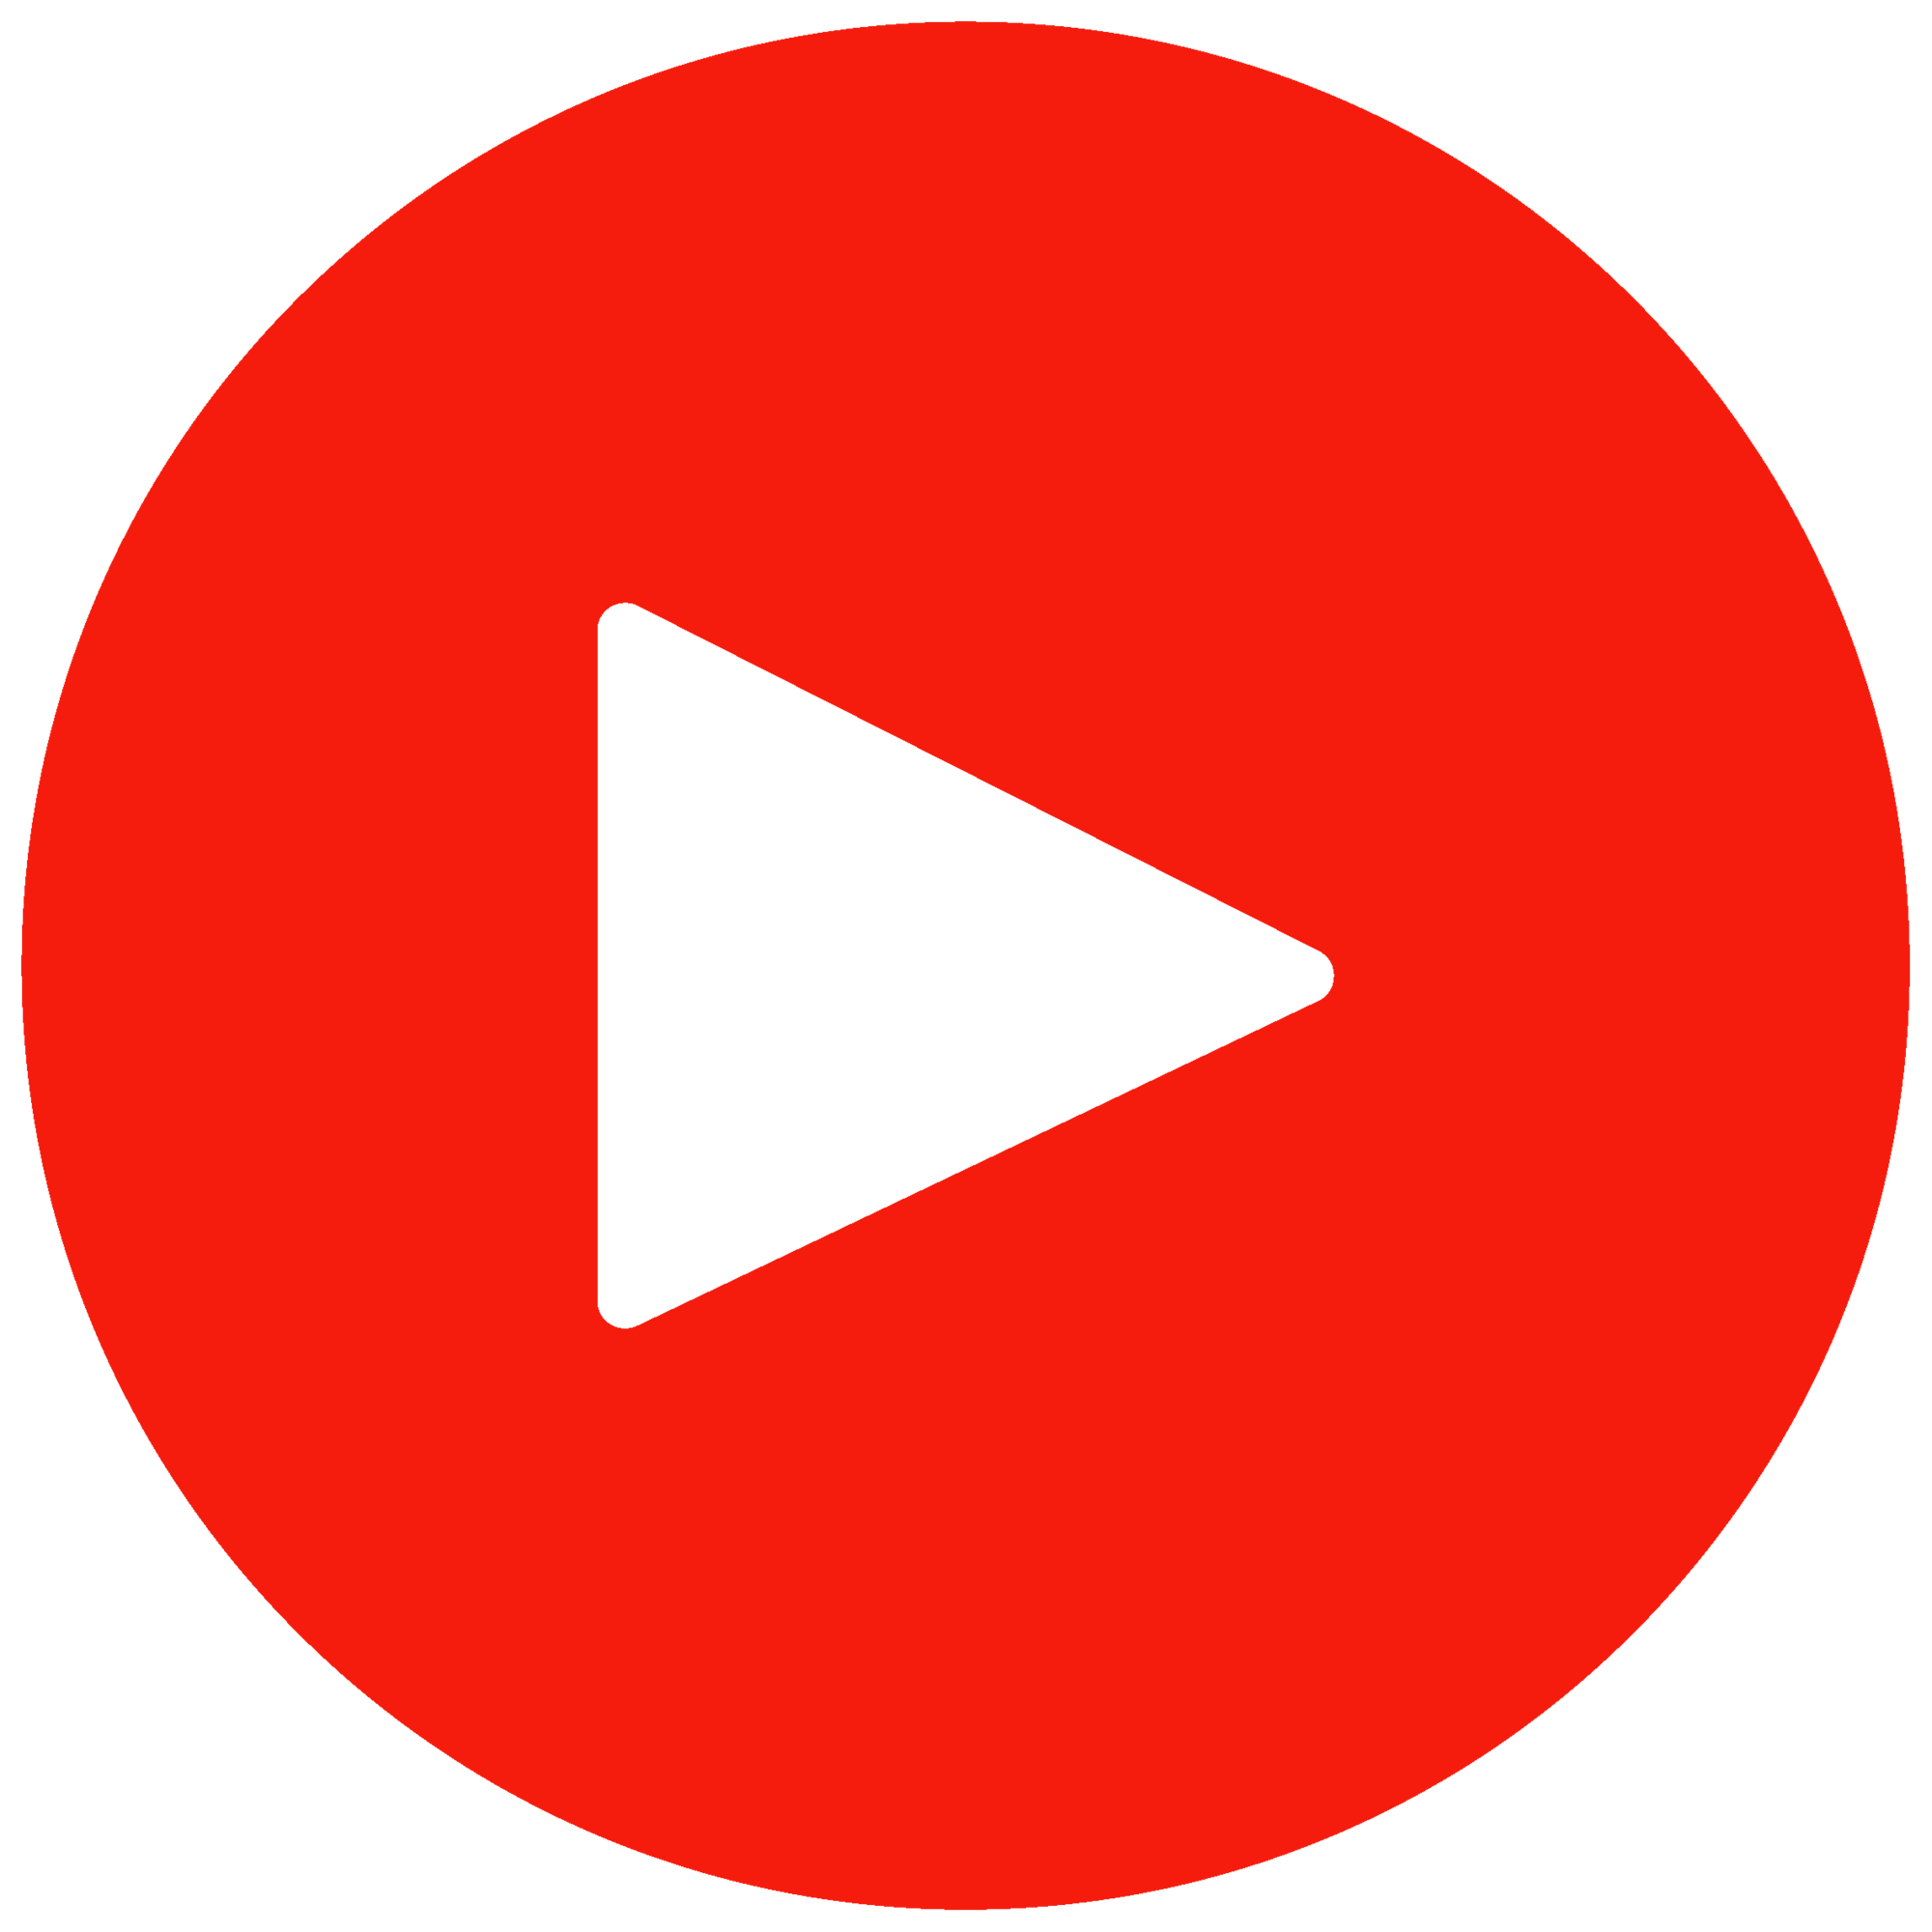 youtube-applied-02-01